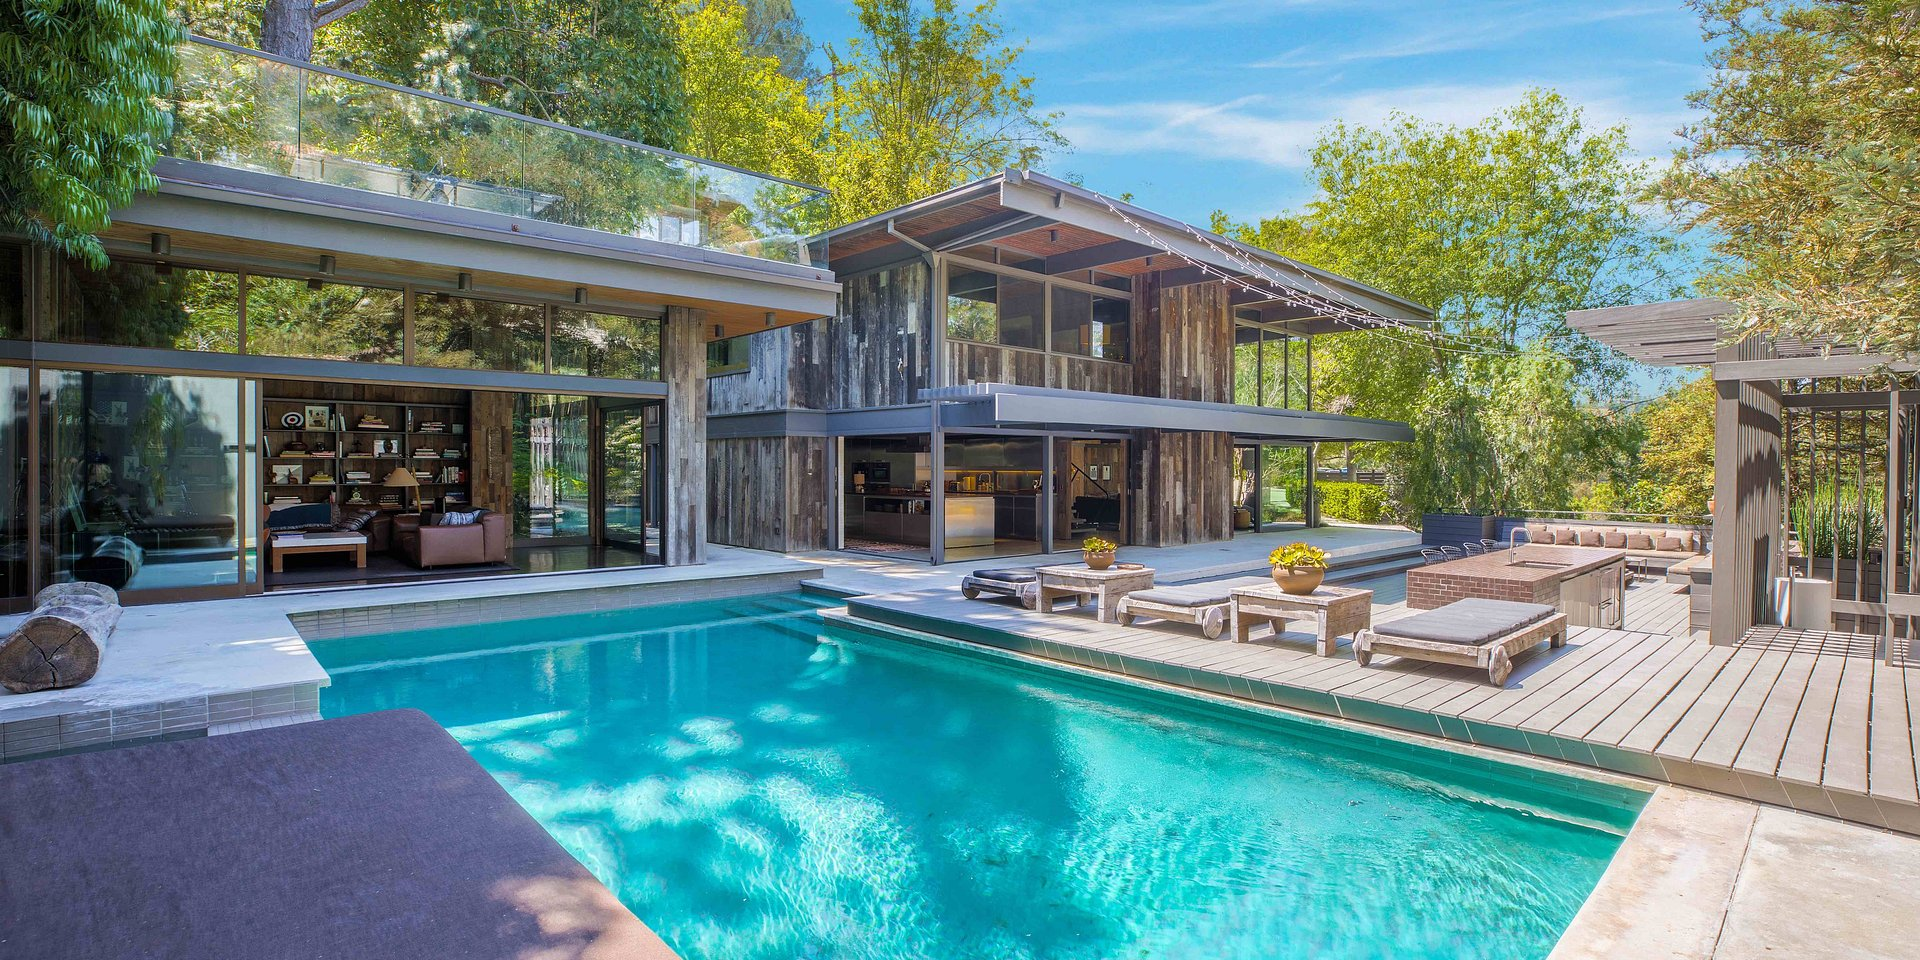 Coldwell Banker Residential Brokerage Lists Hollywood Hills Property for $6.995 Million